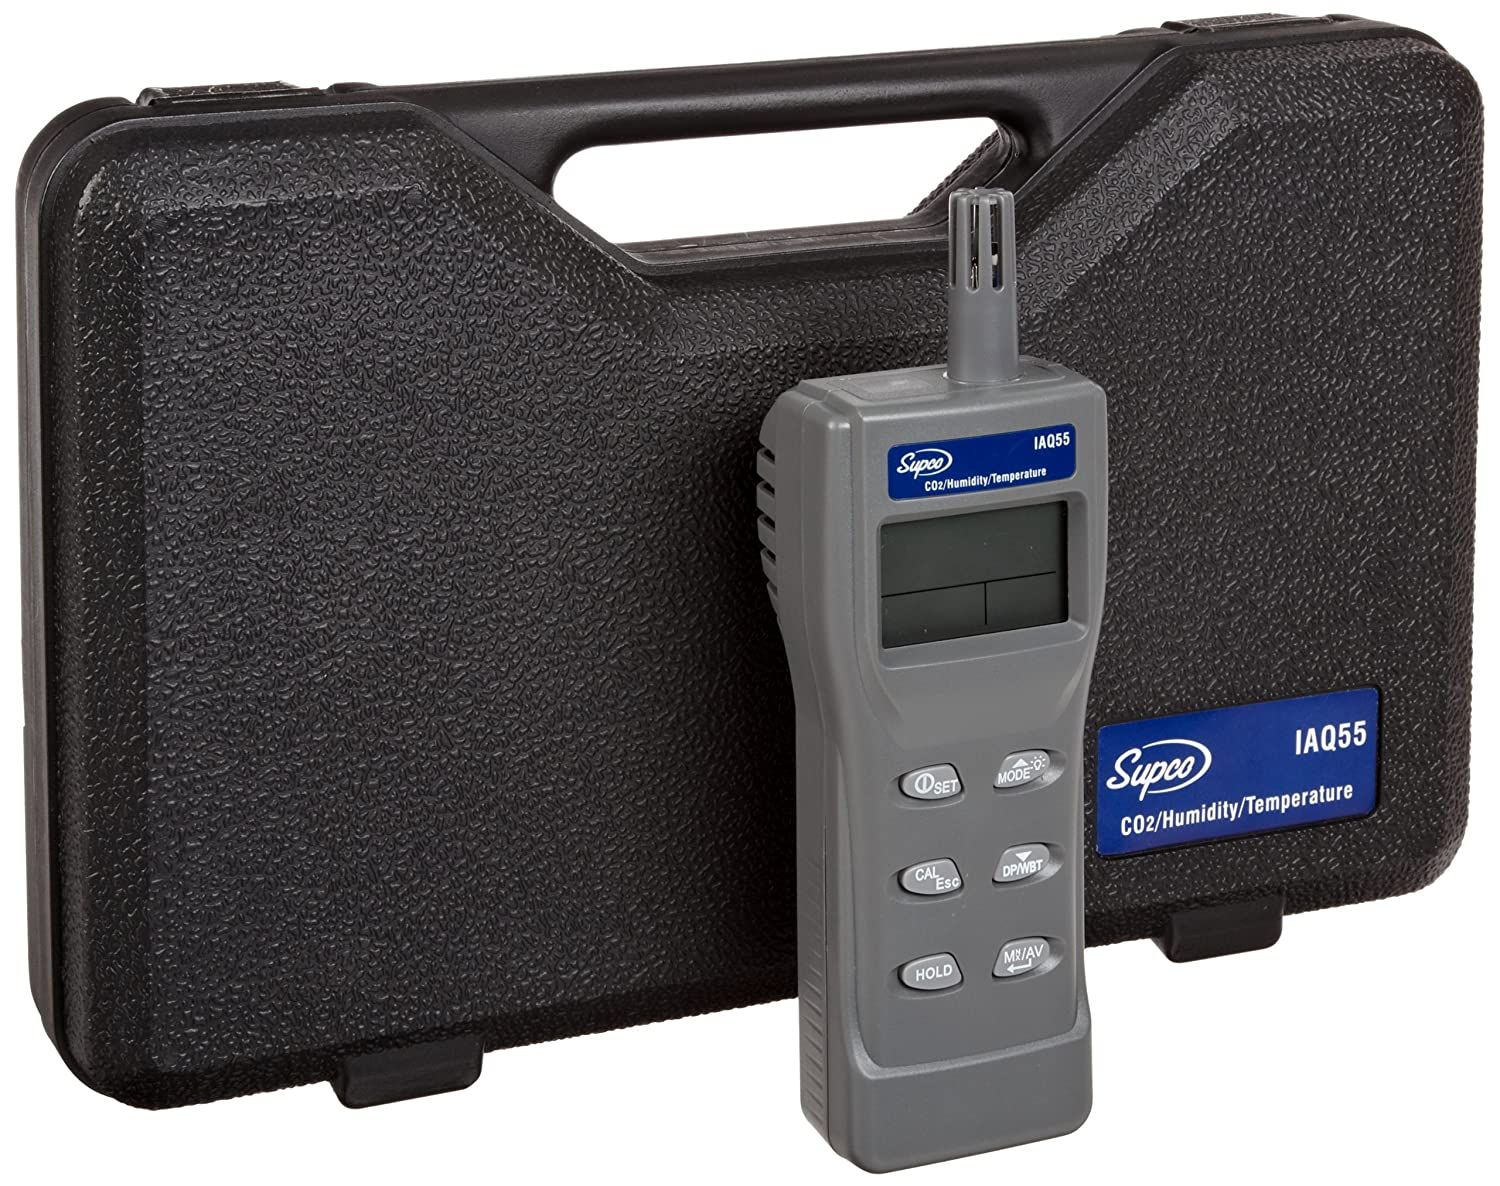 Supco IAQ55 Handheld Indoor Air Quality Monitor, 0 to 2000 Ppm, 1 Ppm Resolution, Plus/- 75 Ppm Accuracy -75 ppm Accuracy 12920